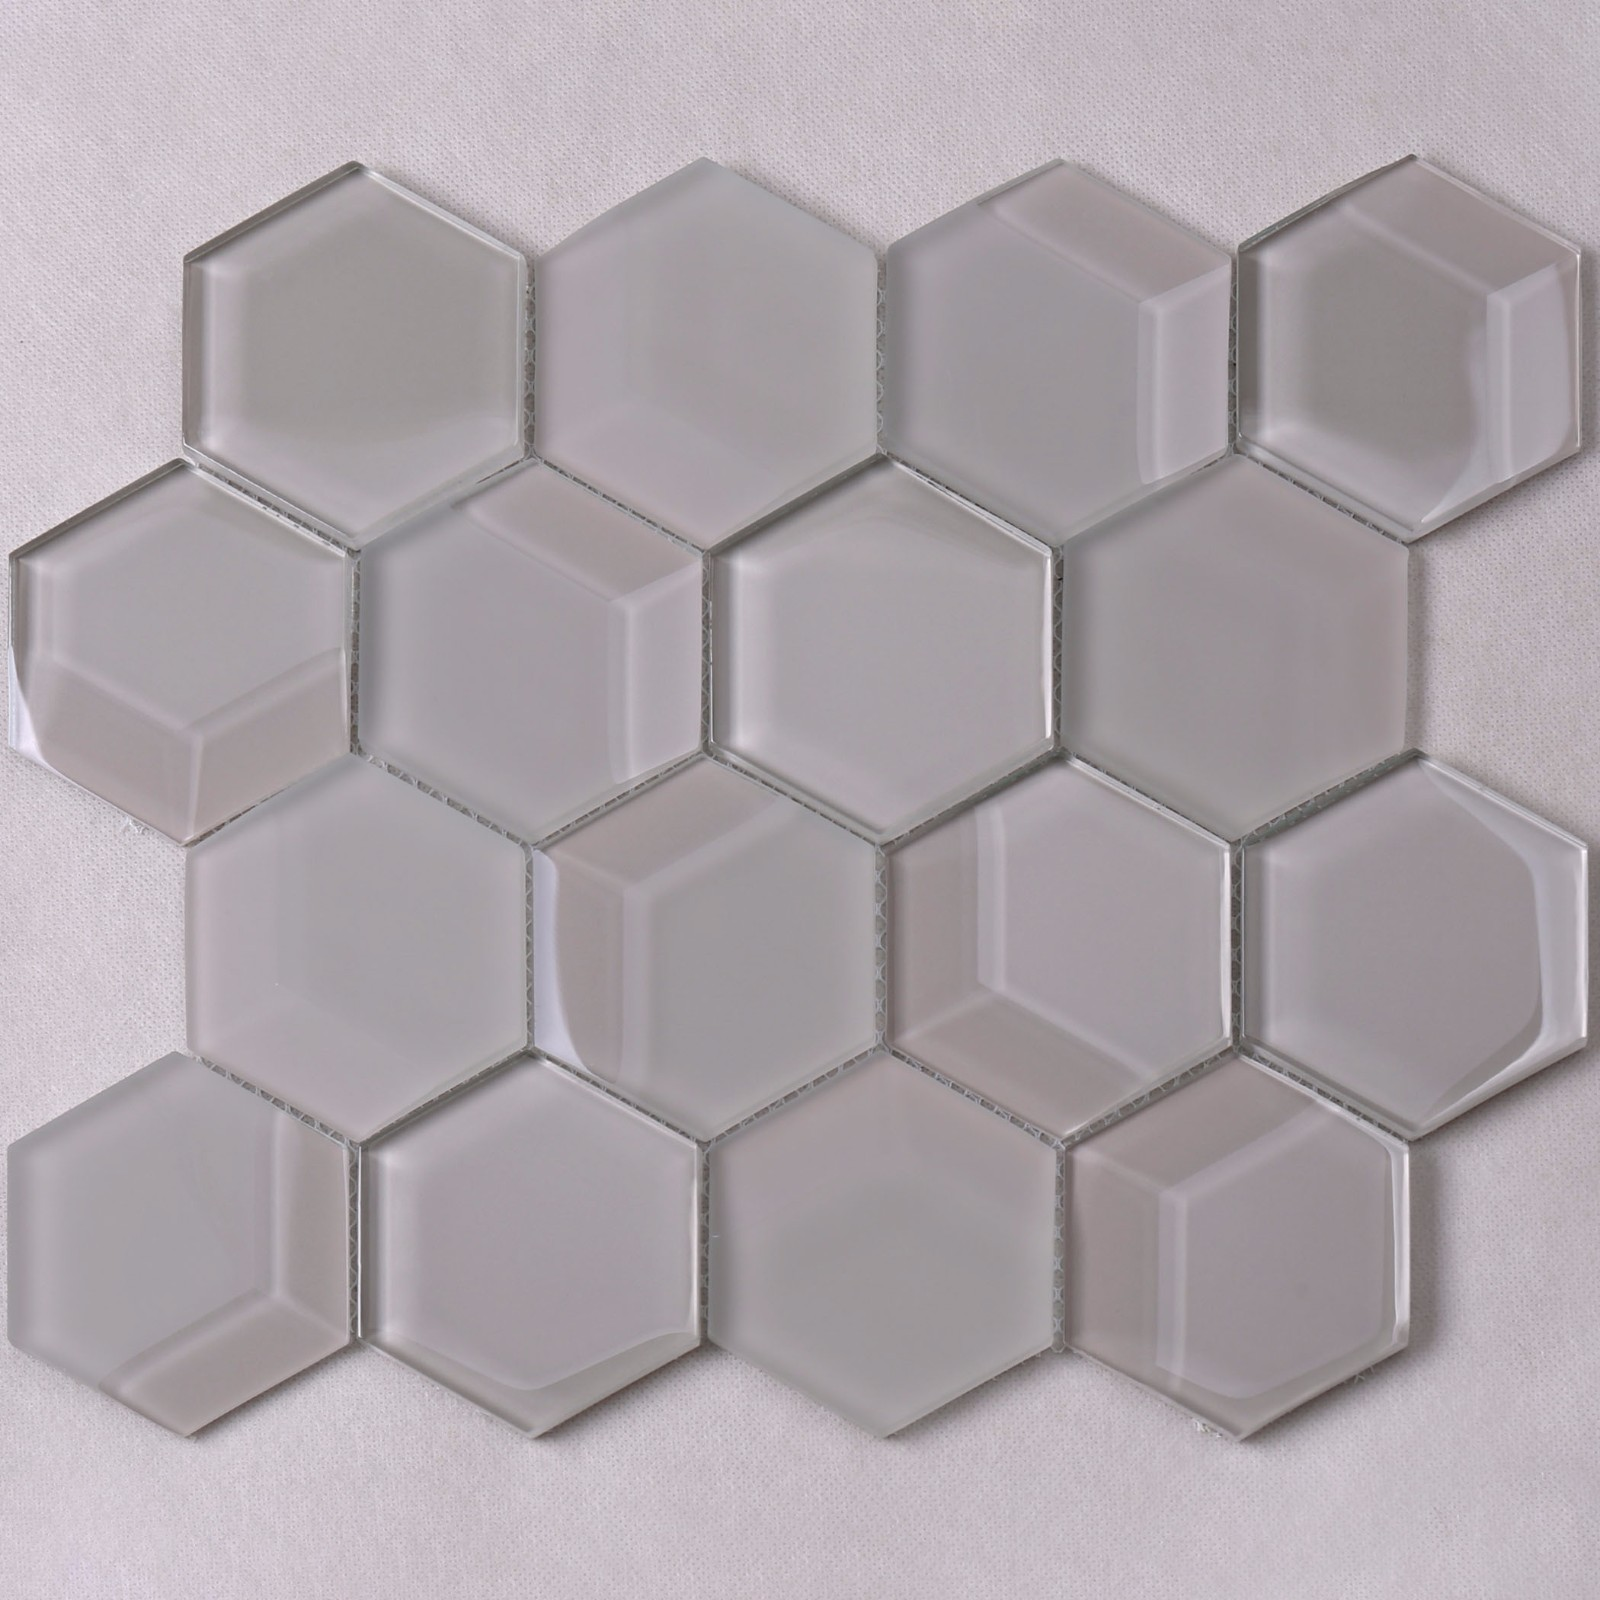 Heng Xing-Oem Green Glass Tile Manufacturer, White Glass Backsplash | Heng Xing